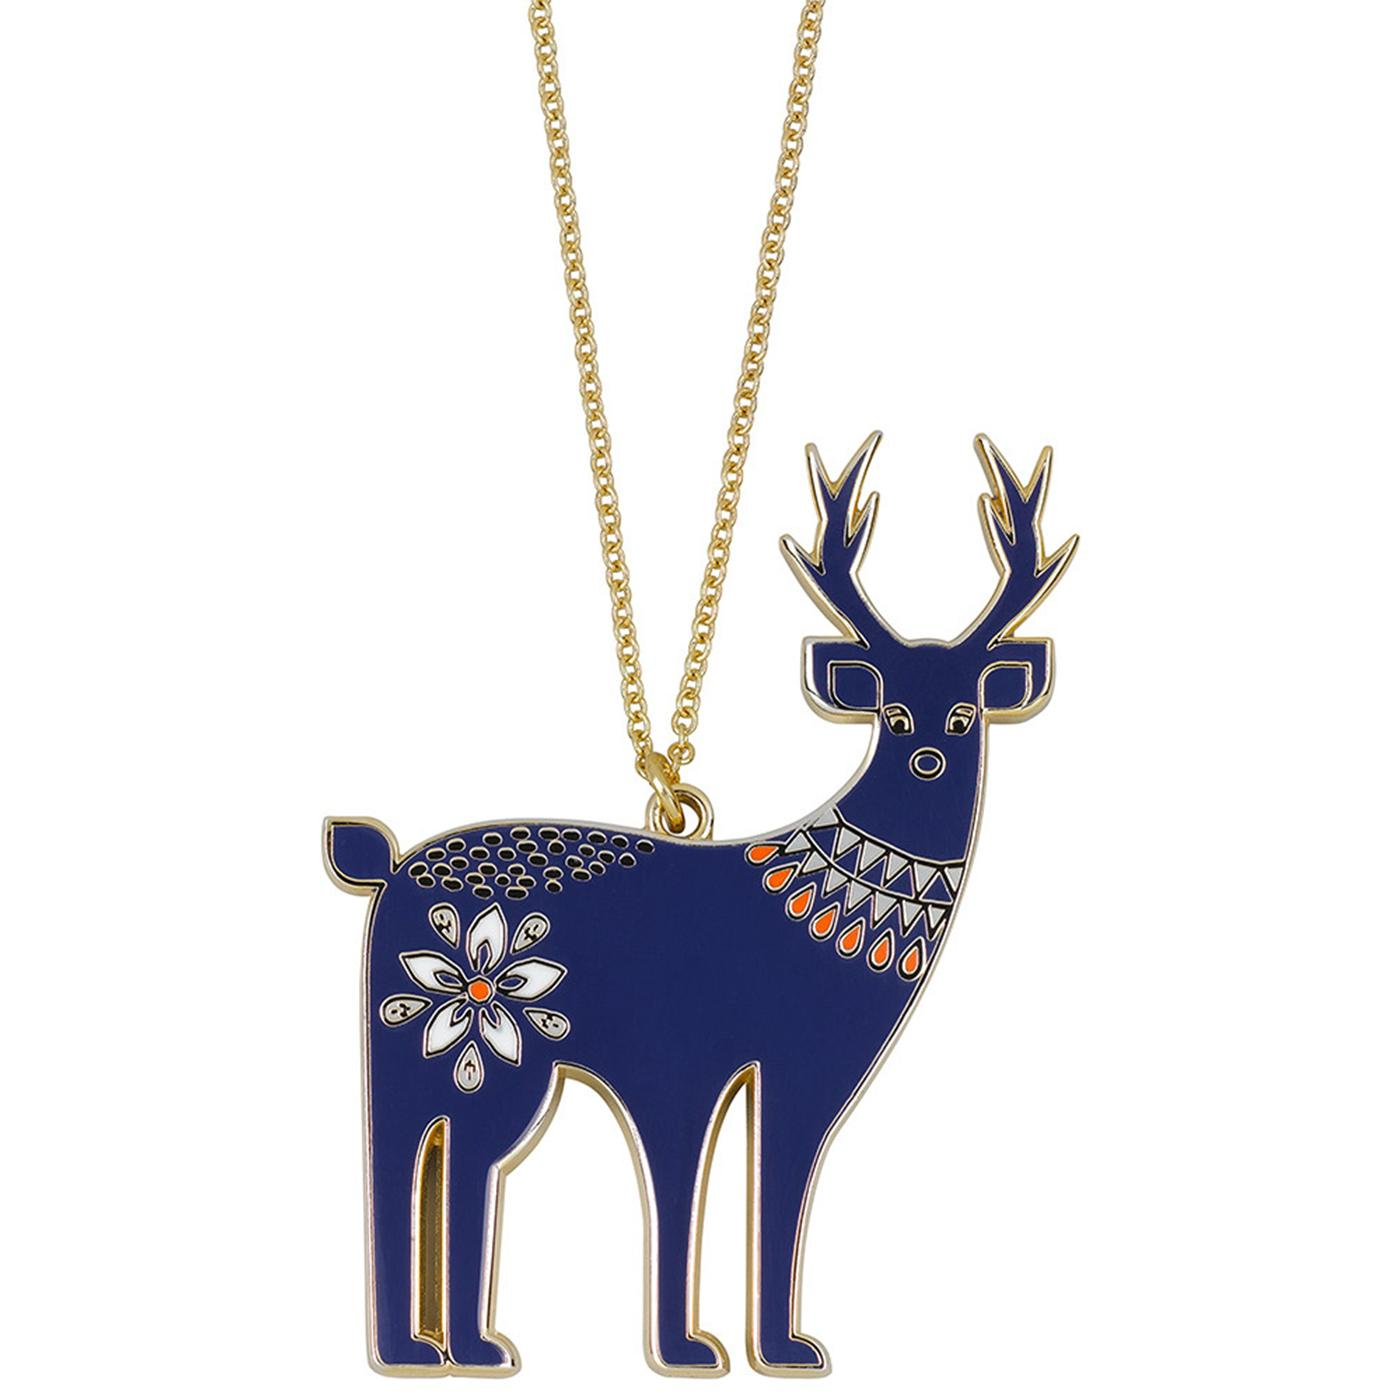 FOLKLORE Retro Vintage Enamel Deer Necklace